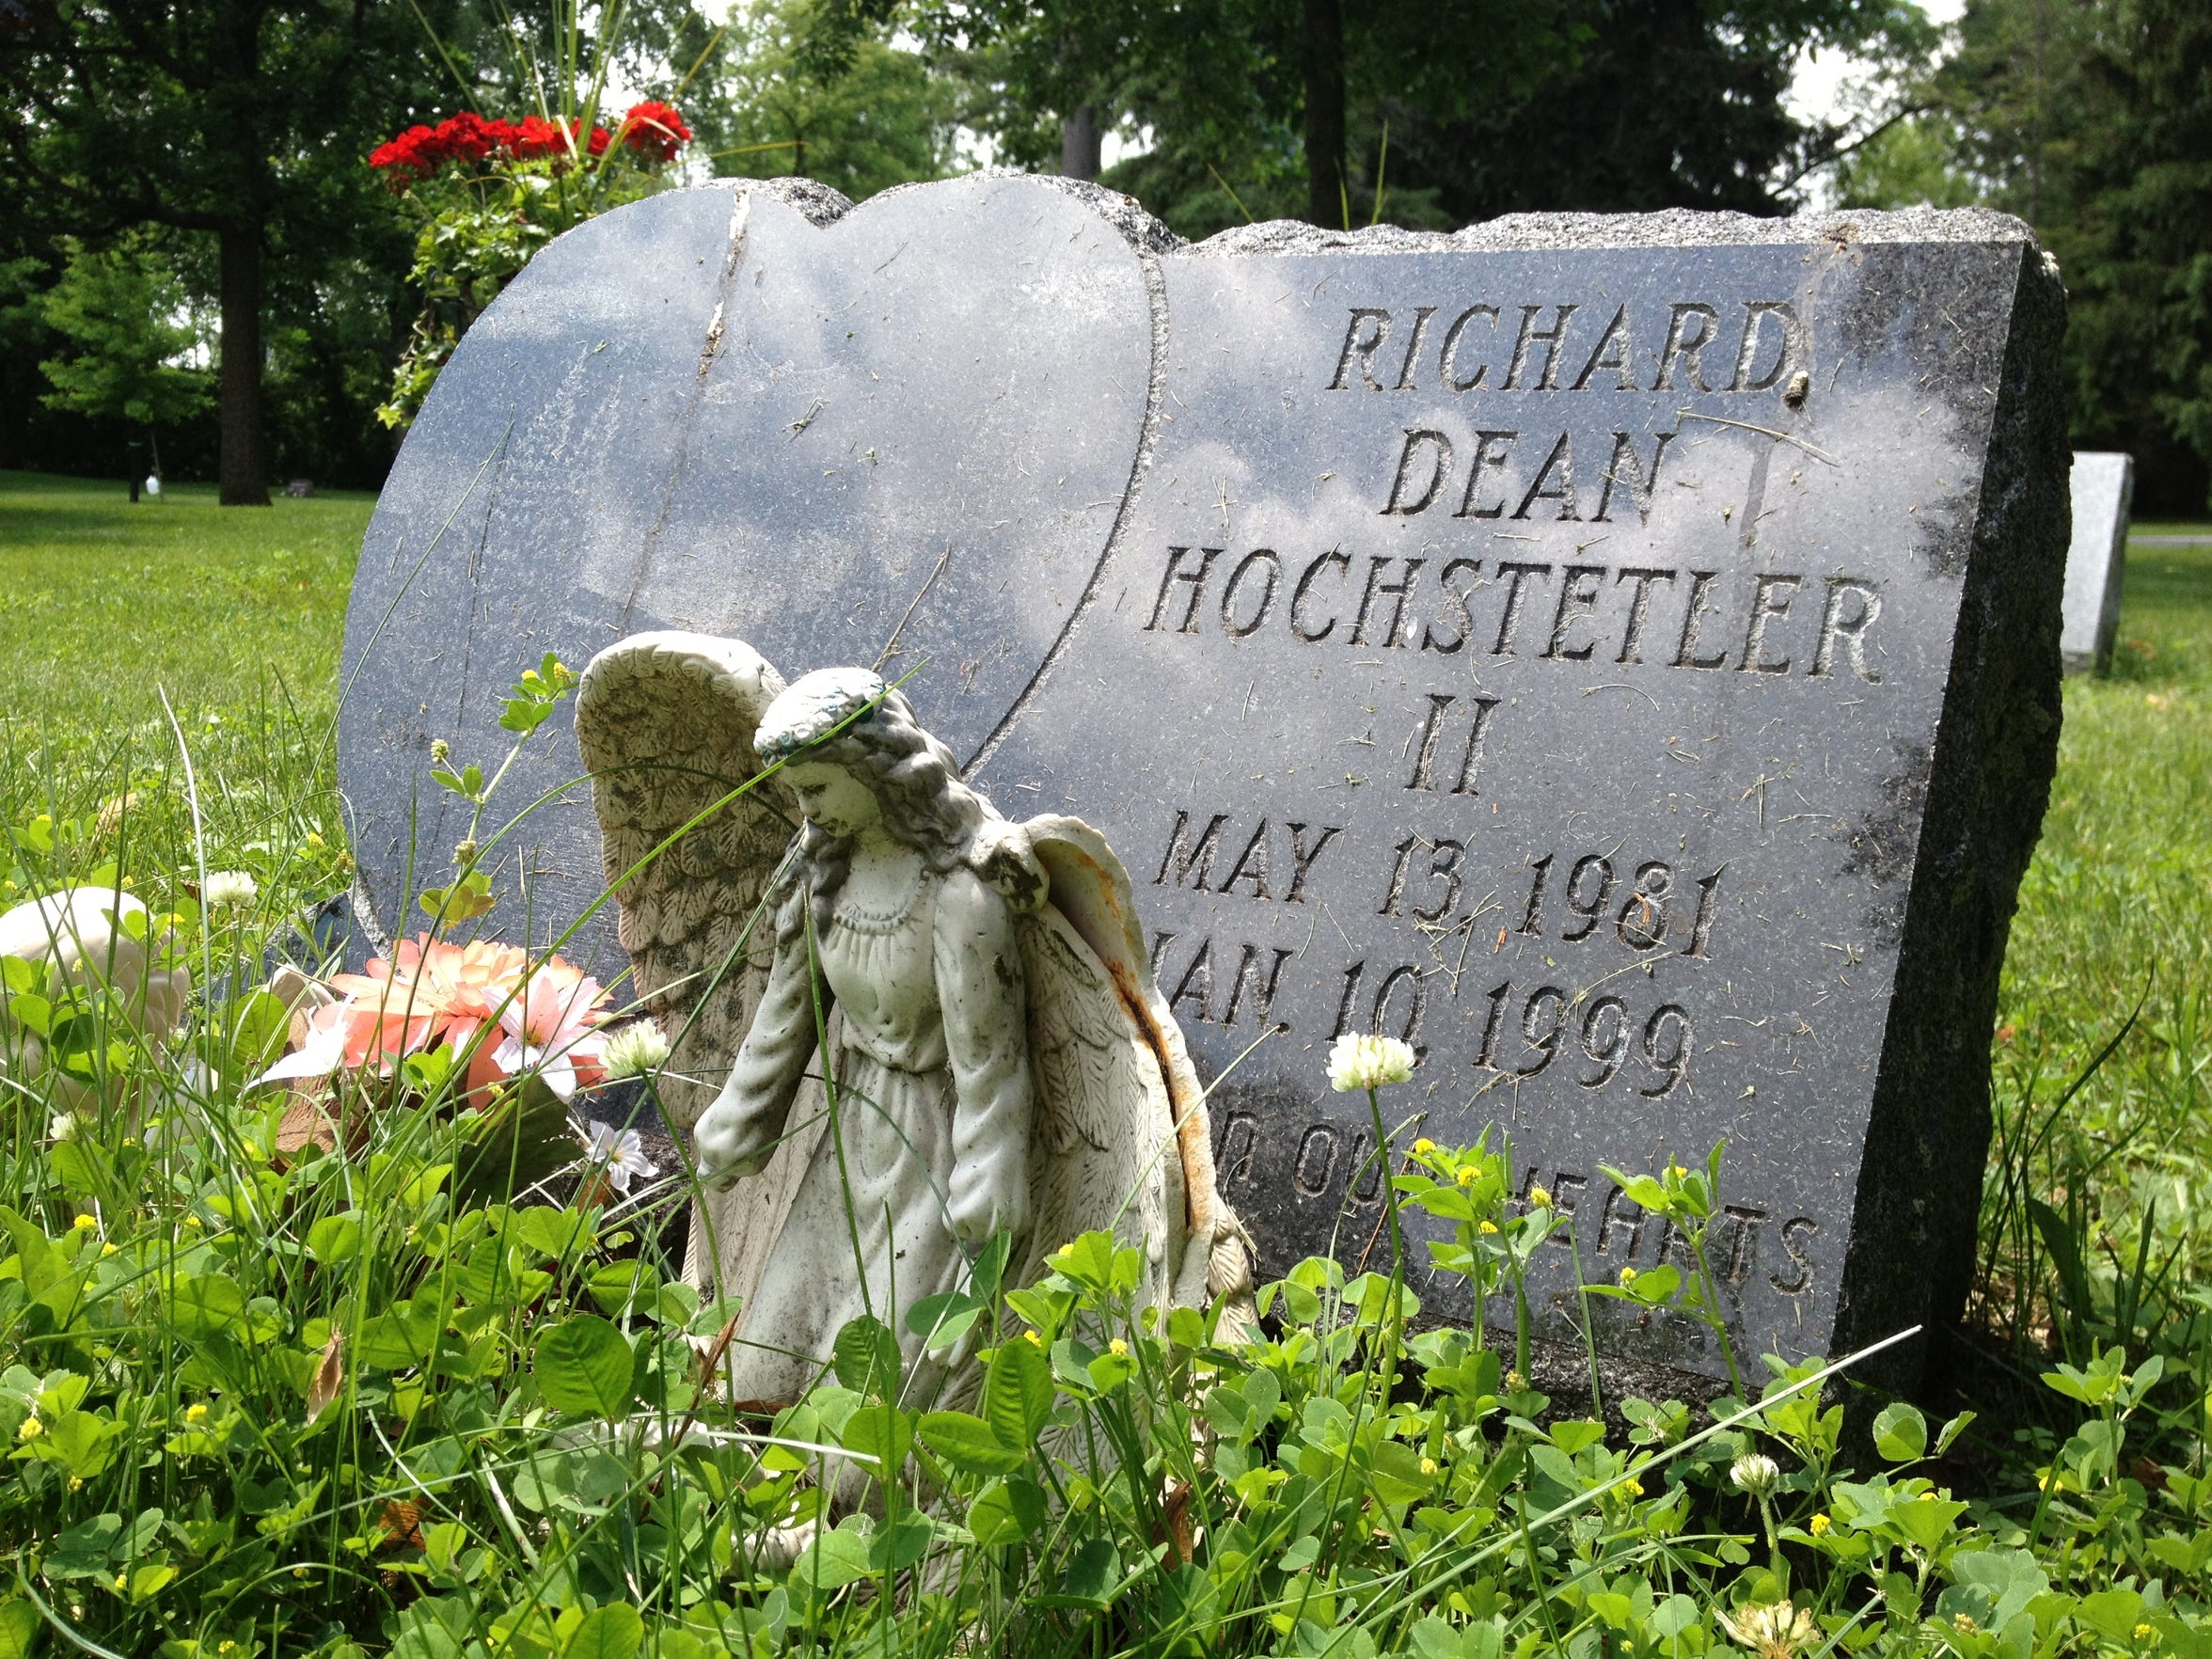 Richard Dean Hochstetler's gravesite at Evergreen Cemetery